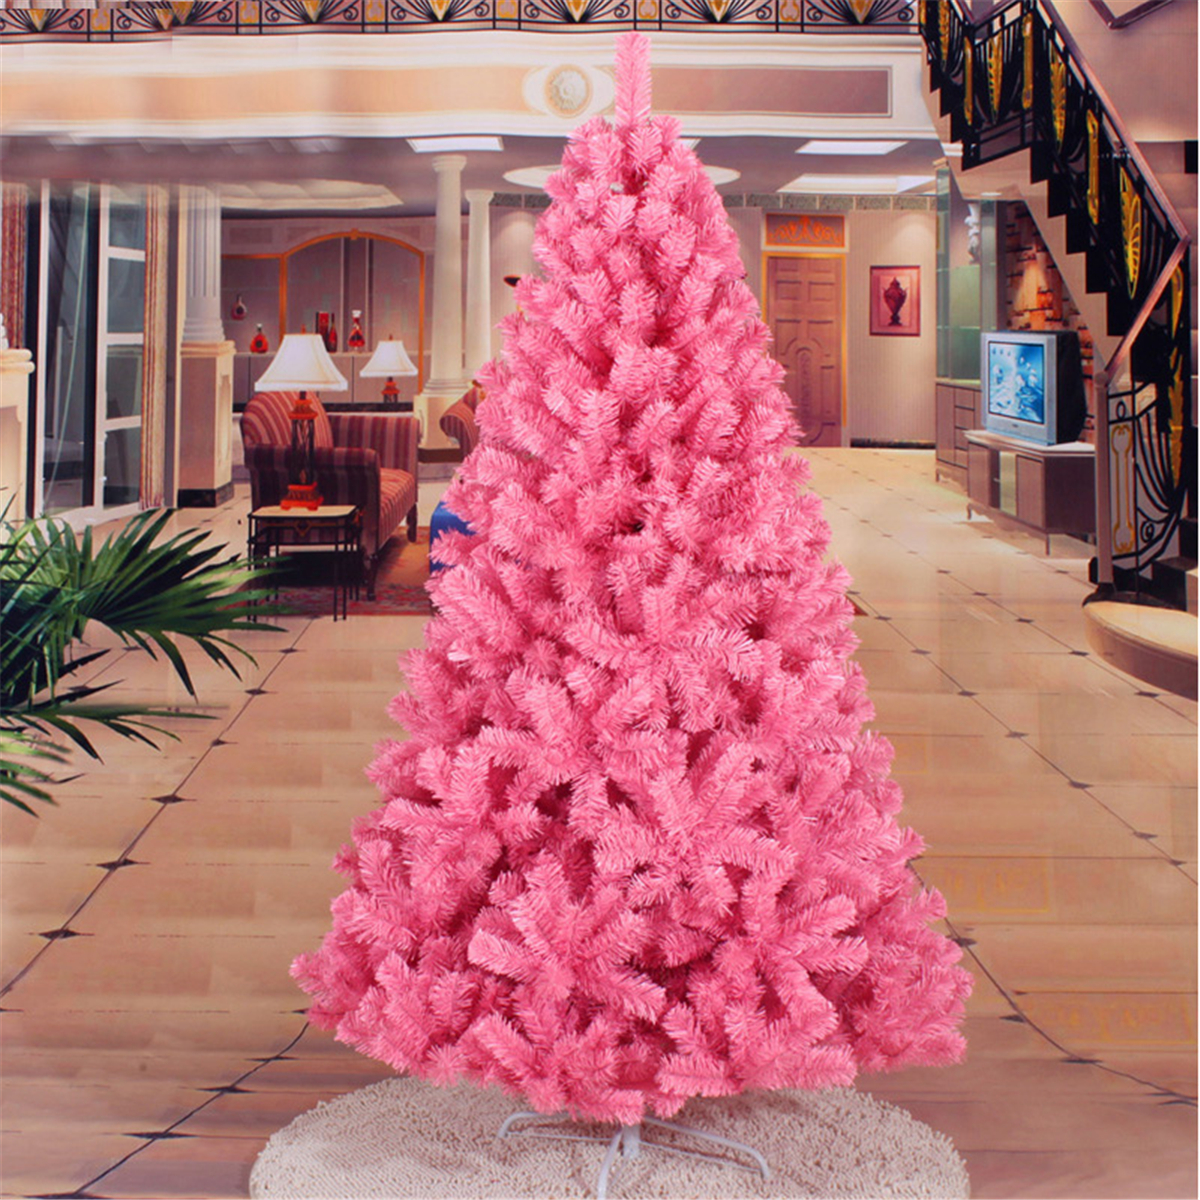 Pink Artificial Christmas Trees: Pink Artificial Christmas Tree Home Decor DIY Christmas